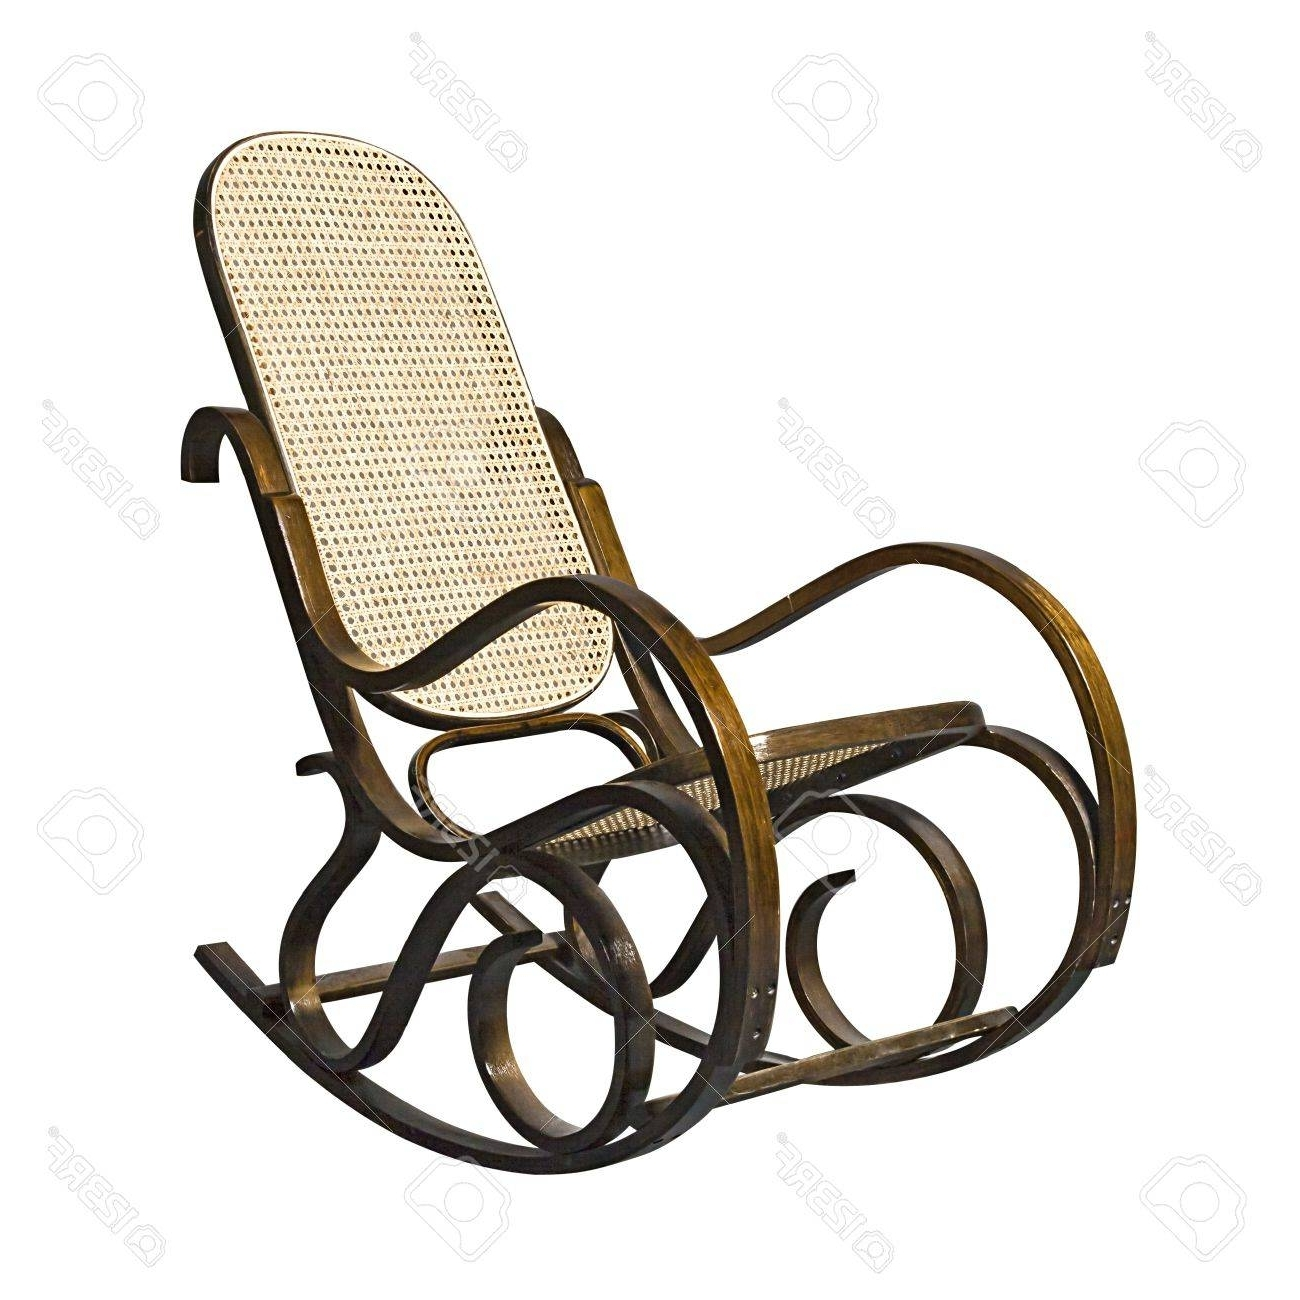 2019 Old Fashioned Rocking Chair Isolated Over White Stock Photo, Picture Regarding Old Fashioned Rocking Chairs (View 1 of 20)